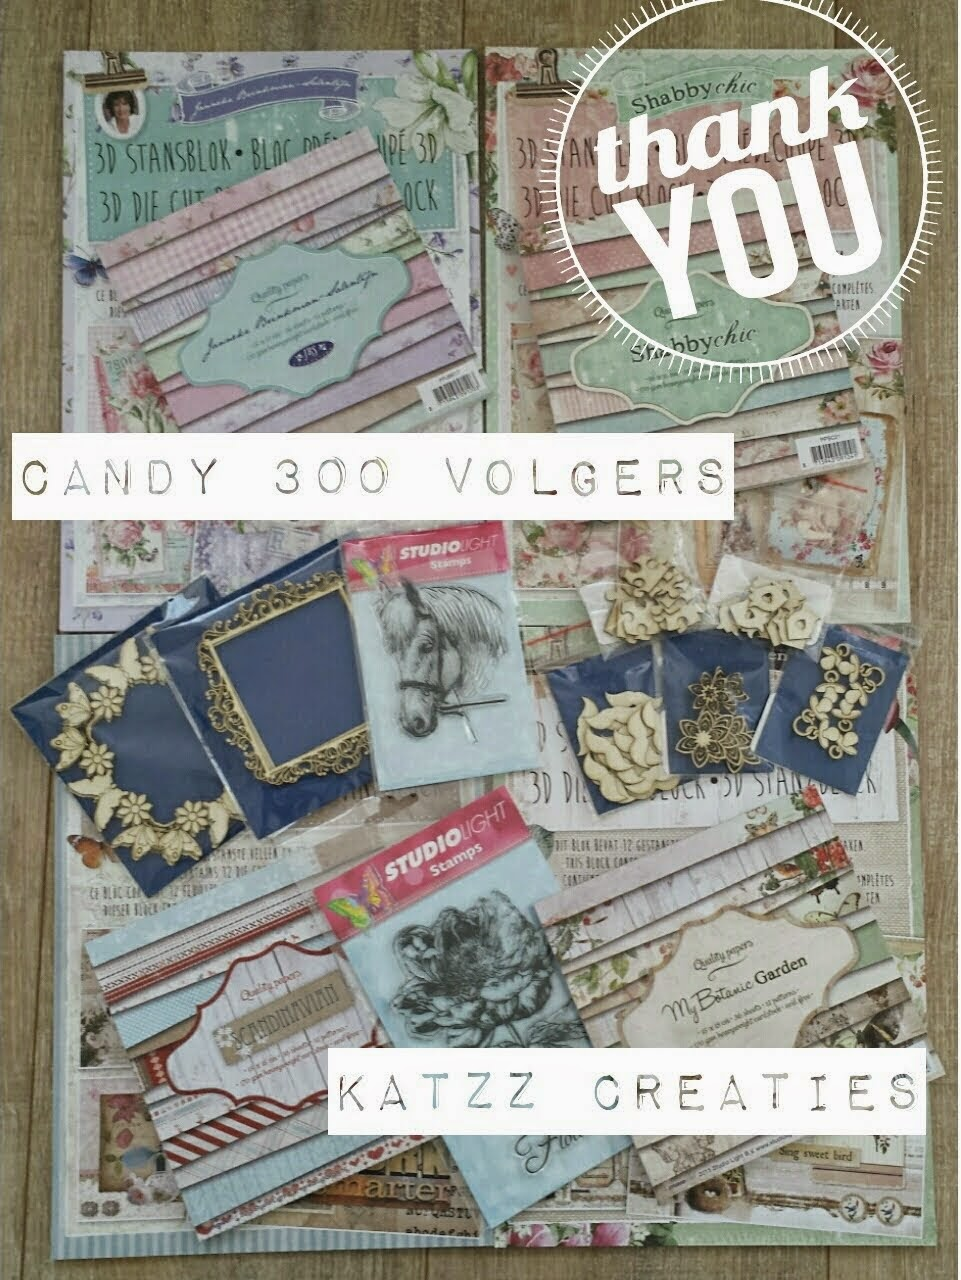 CANDY 300 VOLGERS